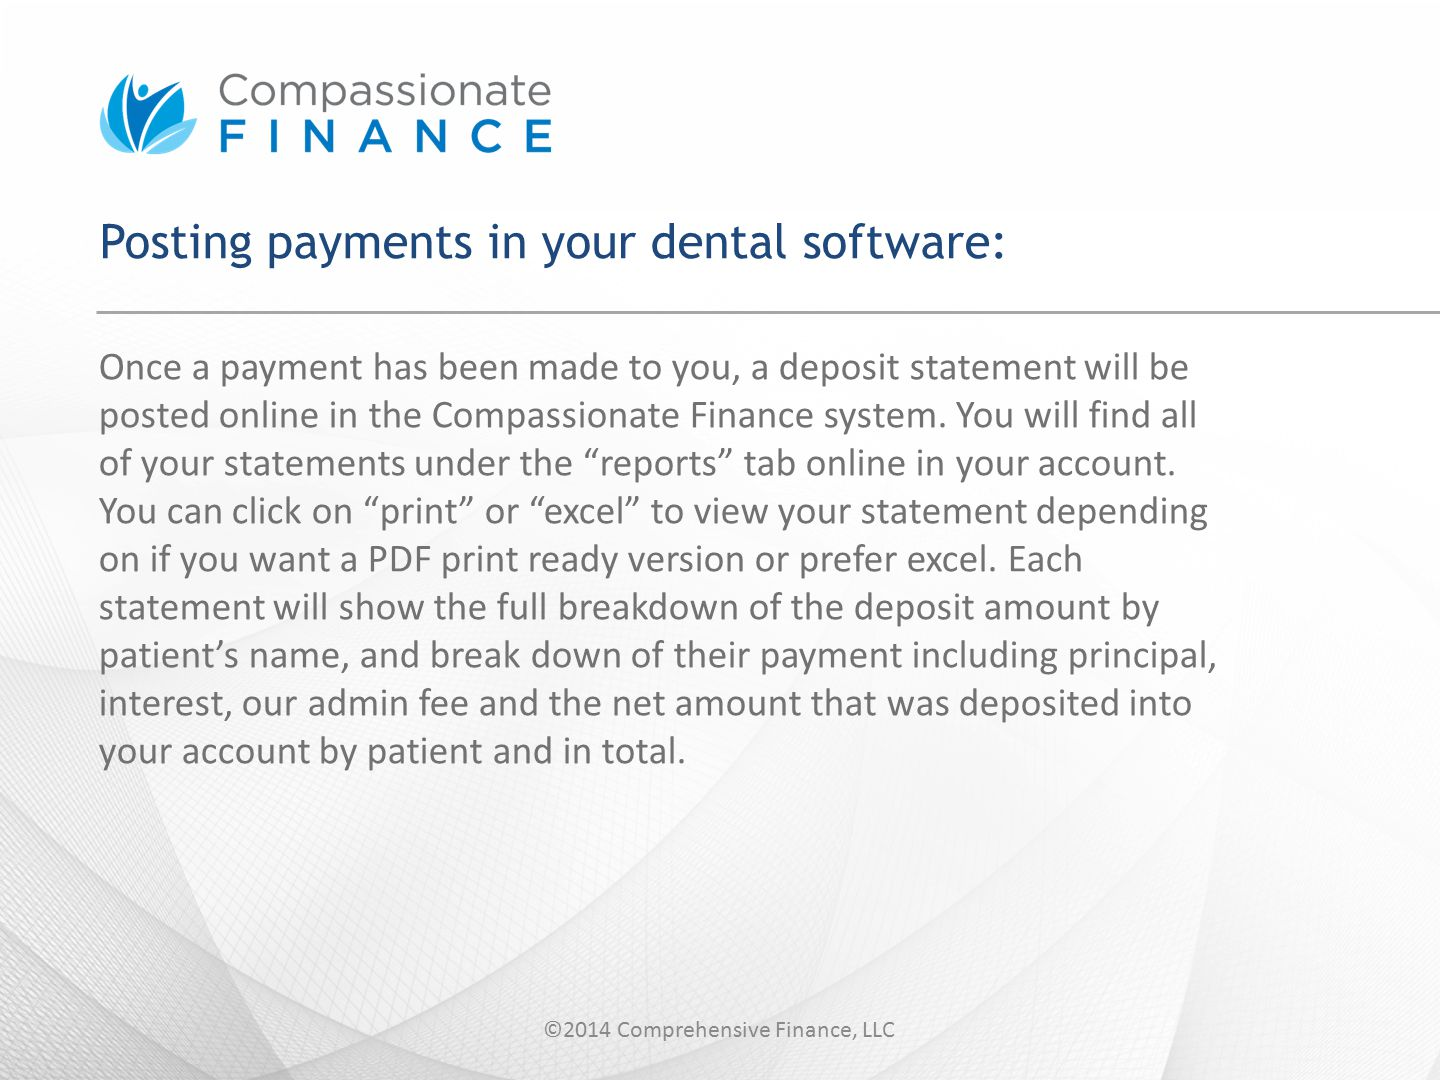 Summarized step by step: 1.Access your deposit statement online under the Reports tab and print 2.Post the principal amount to the correct patient's ledger 3.Post the total amount of interest as a credit to the CF ledger 4.Post the total amount of admin fee paid as a debit to the CF ledger ©2014 Comprehensive Finance, LLC